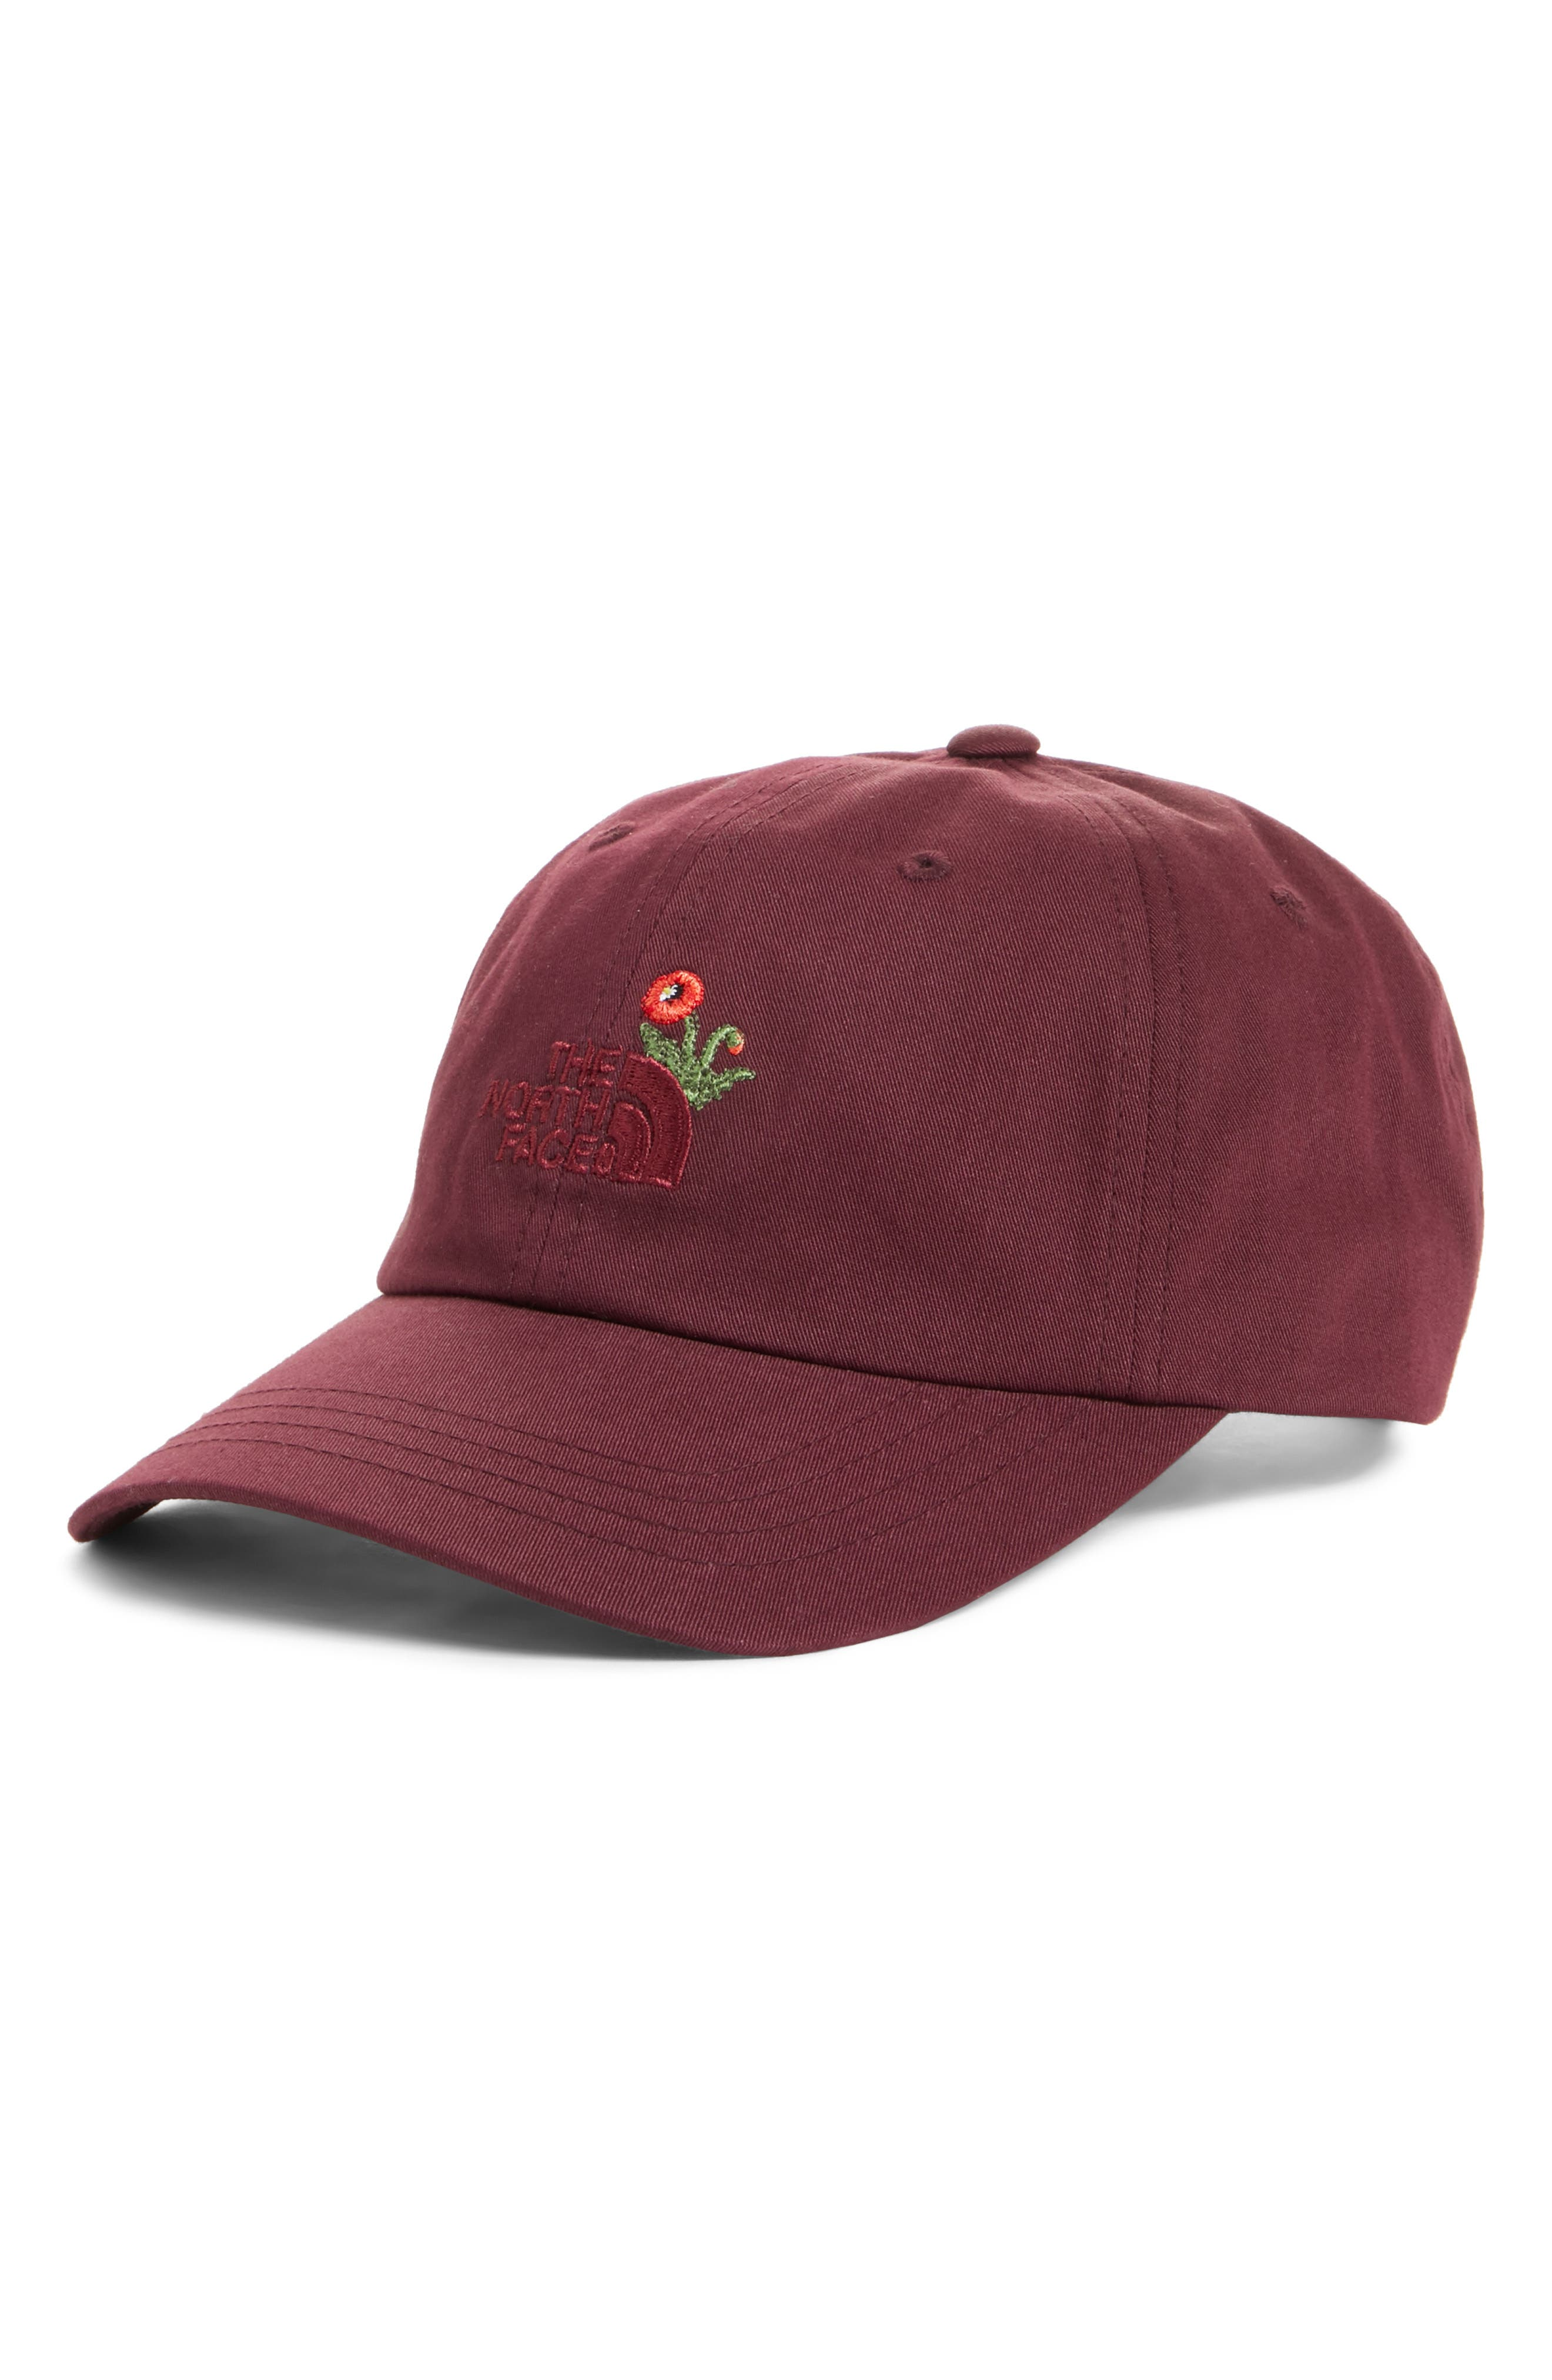 Norm Poppy Embroidered Adjustable Cap,                             Main thumbnail 3, color,